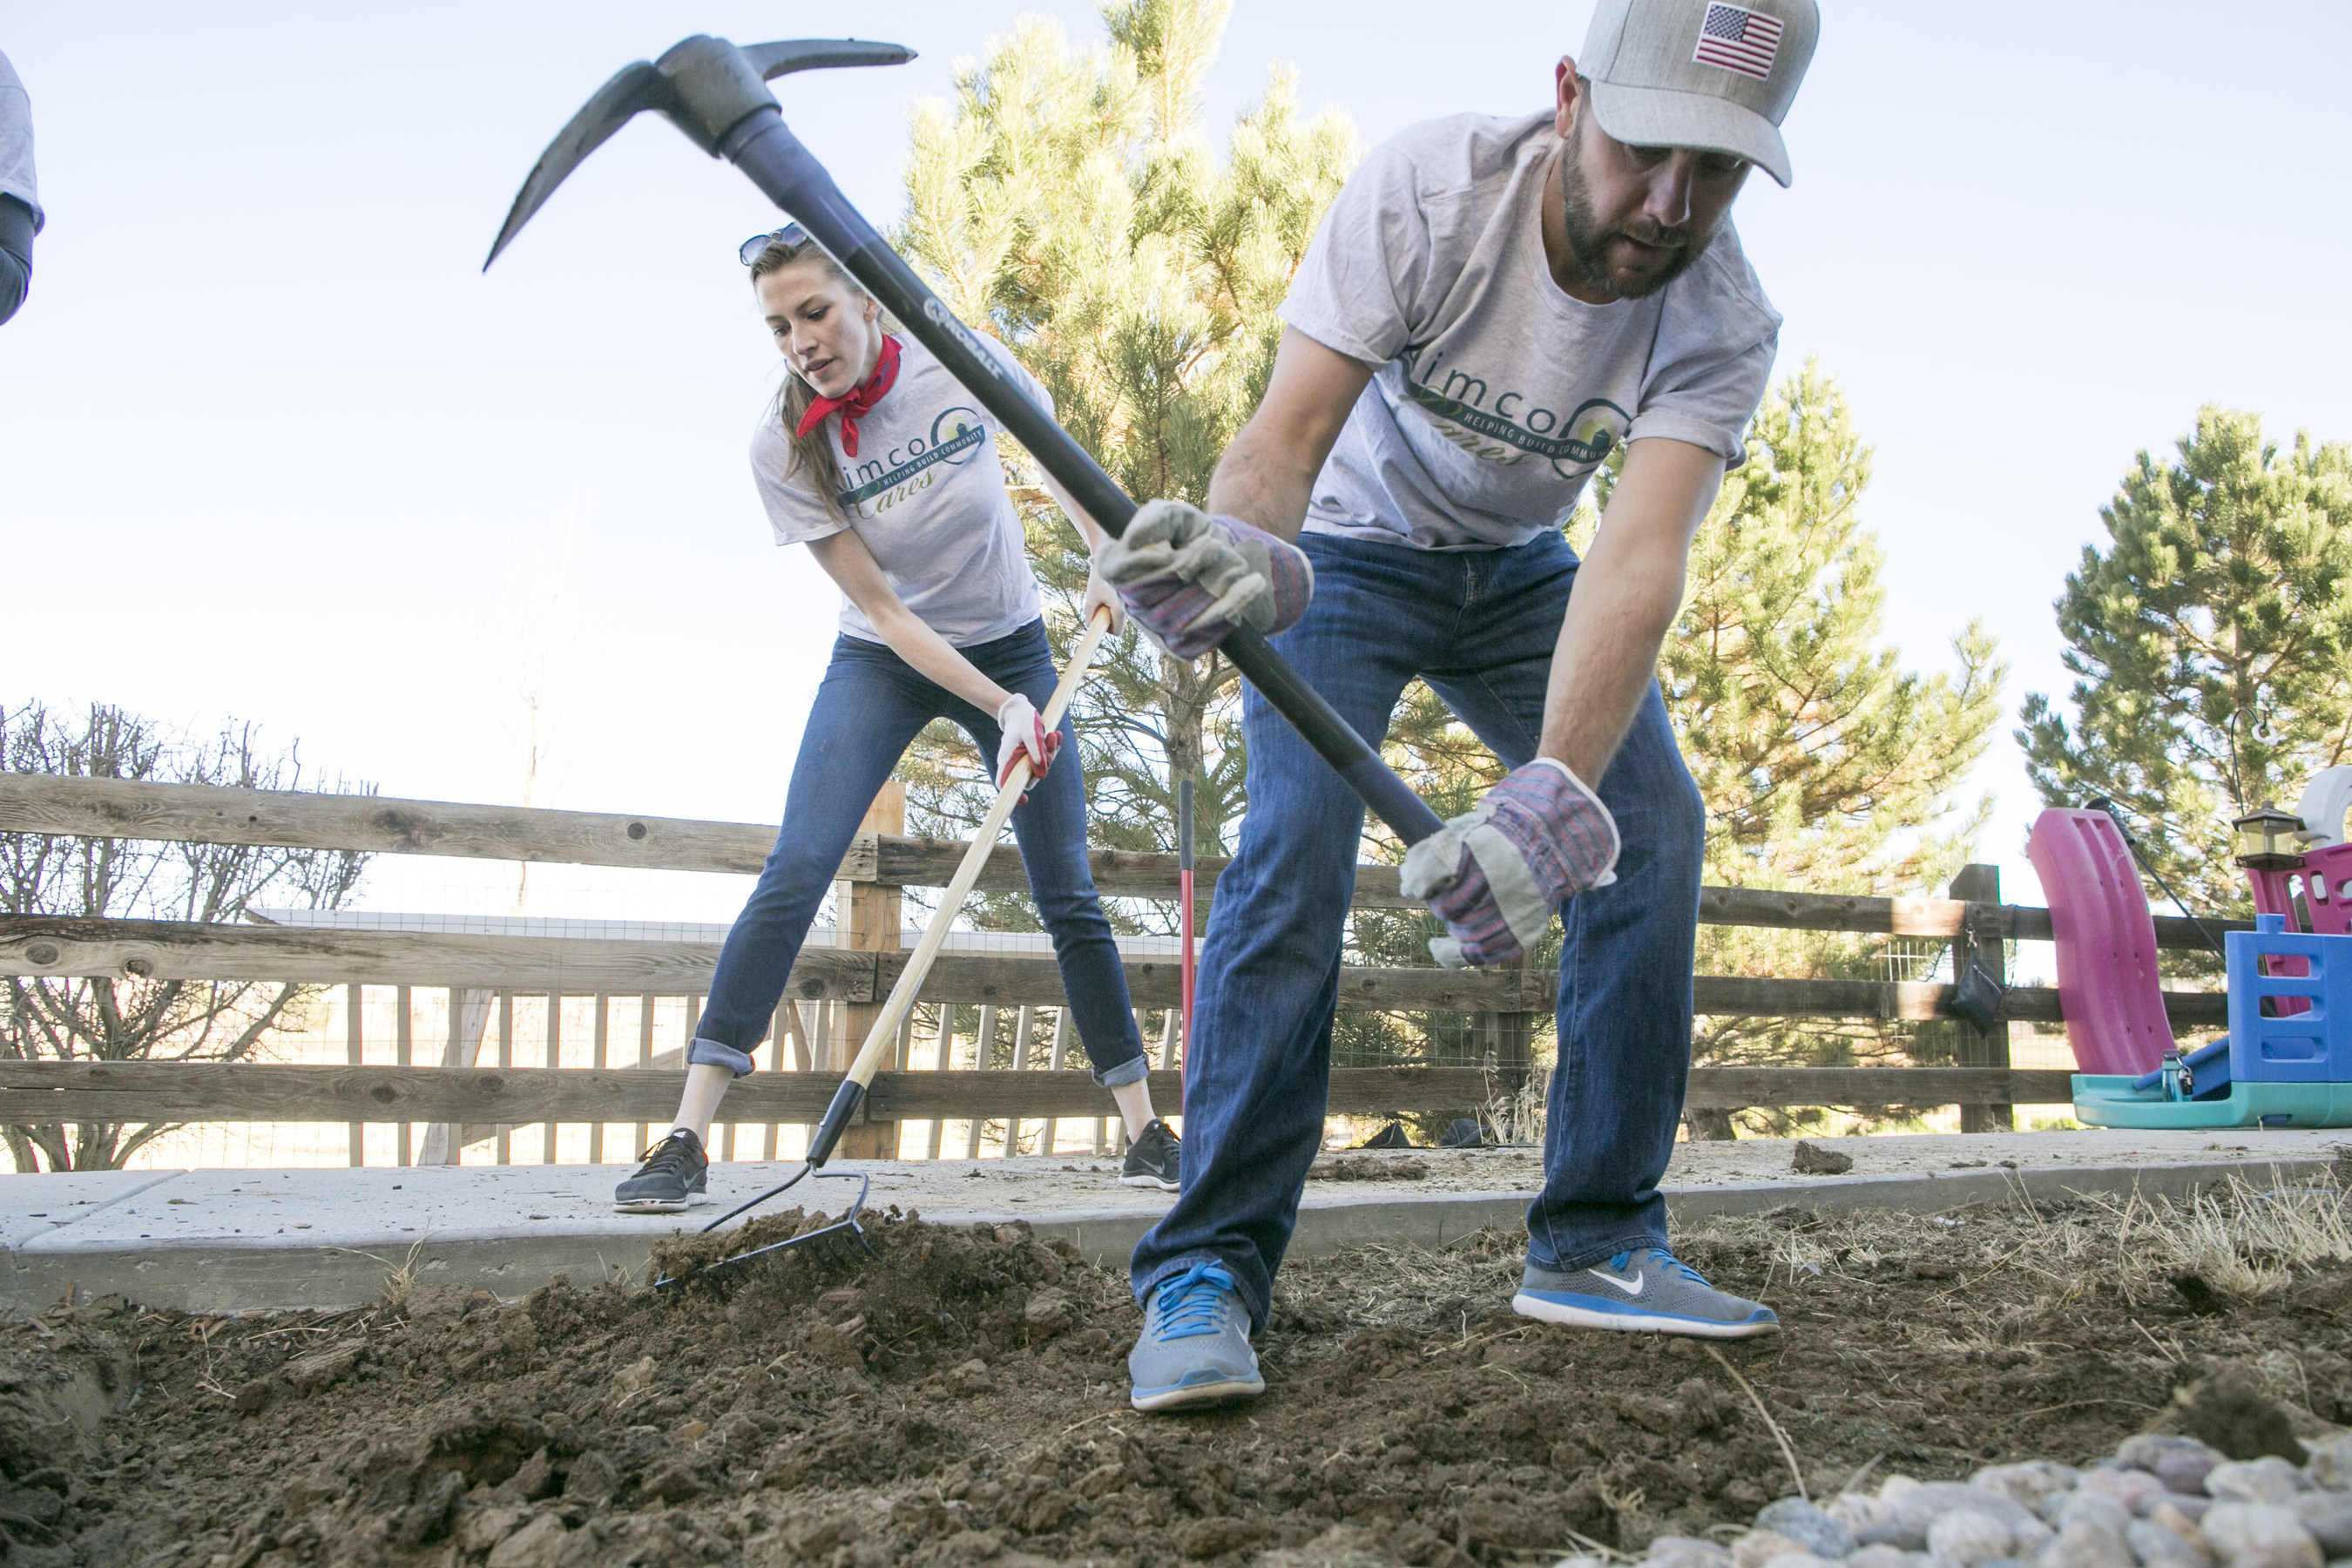 Aimco team members helped landscape the yard at the home of a disabled U.S. Navy veteran to give him access to the play area enjoyed by his daughter.